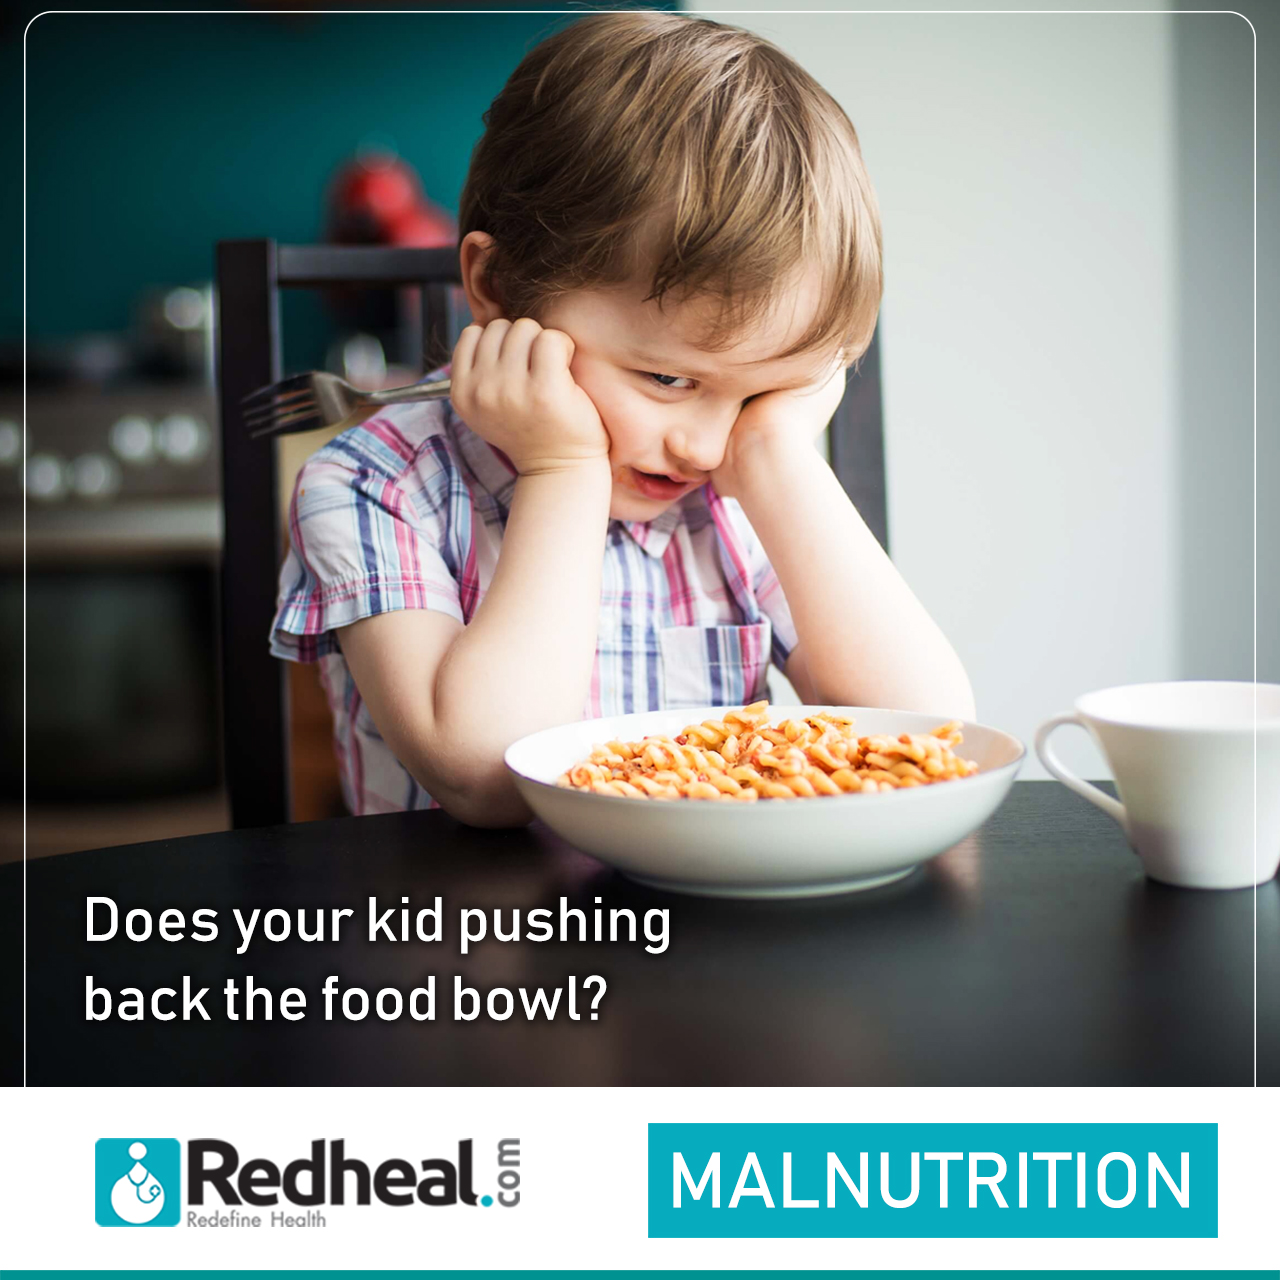 malnutrition,good paediatricians near me, doctor on call near me